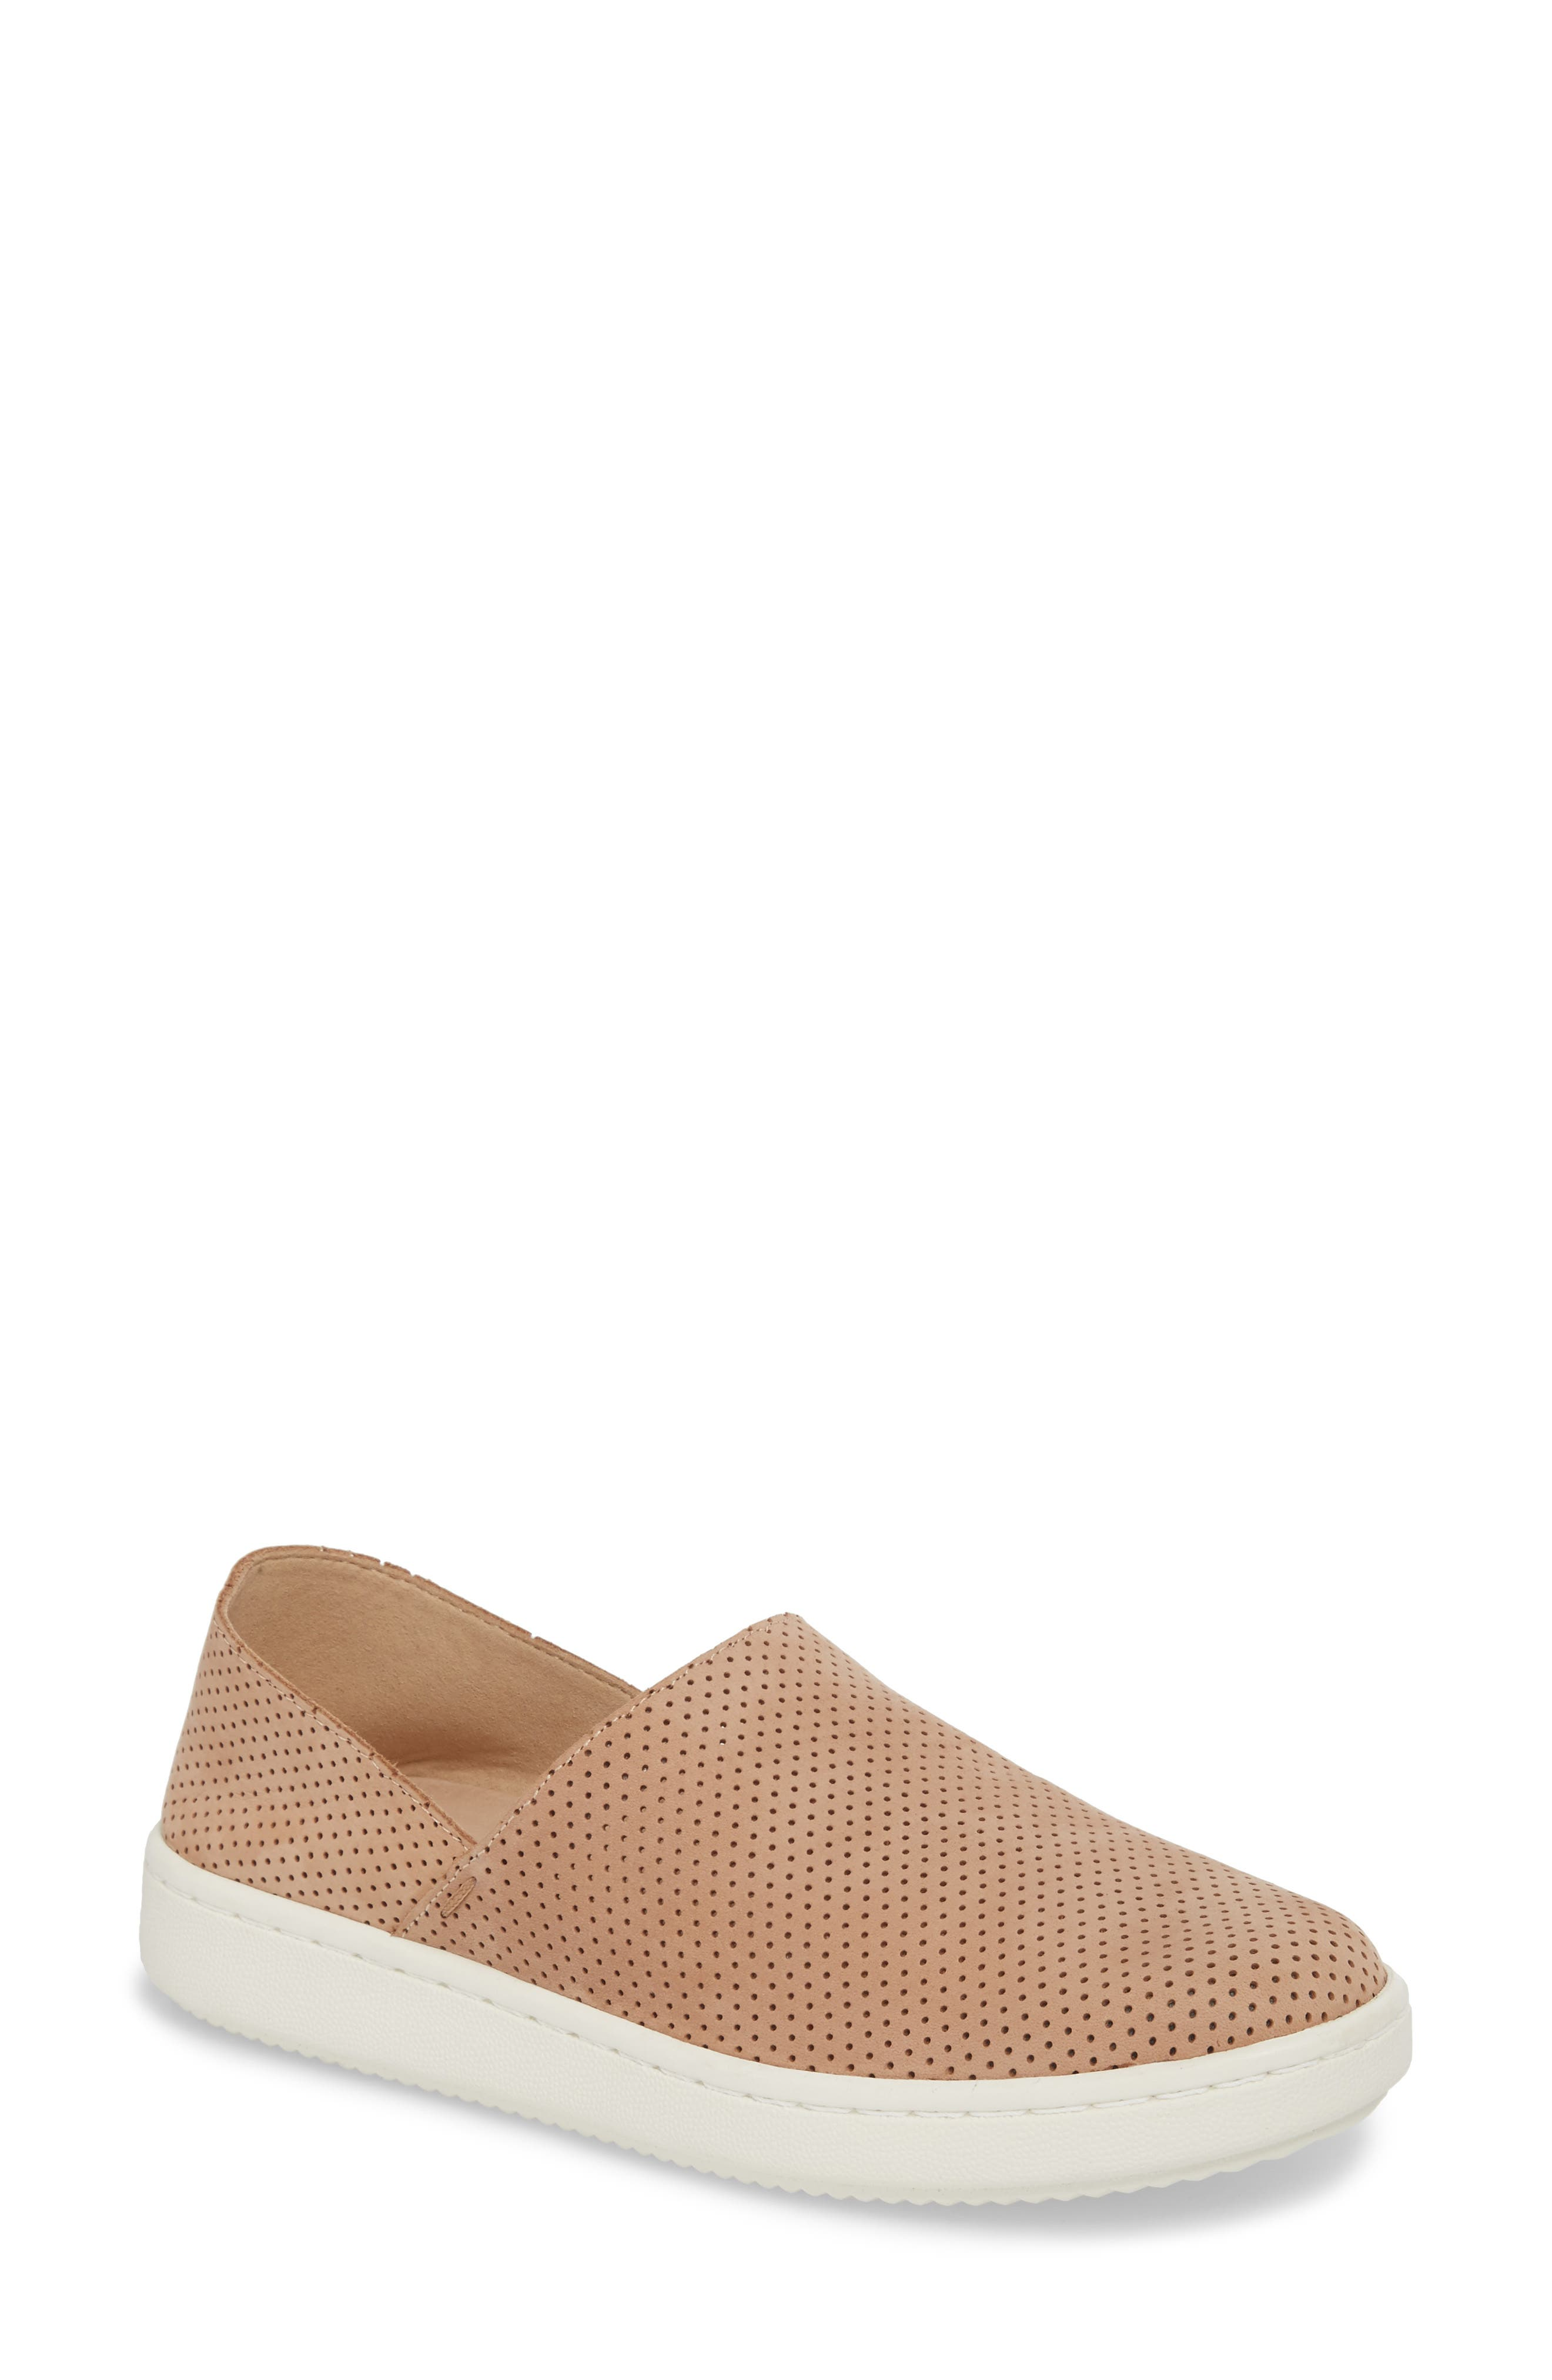 Alternate Image 1 Selected - Eileen Fisher Panda Perforated Slip-On Sneaker (Women)